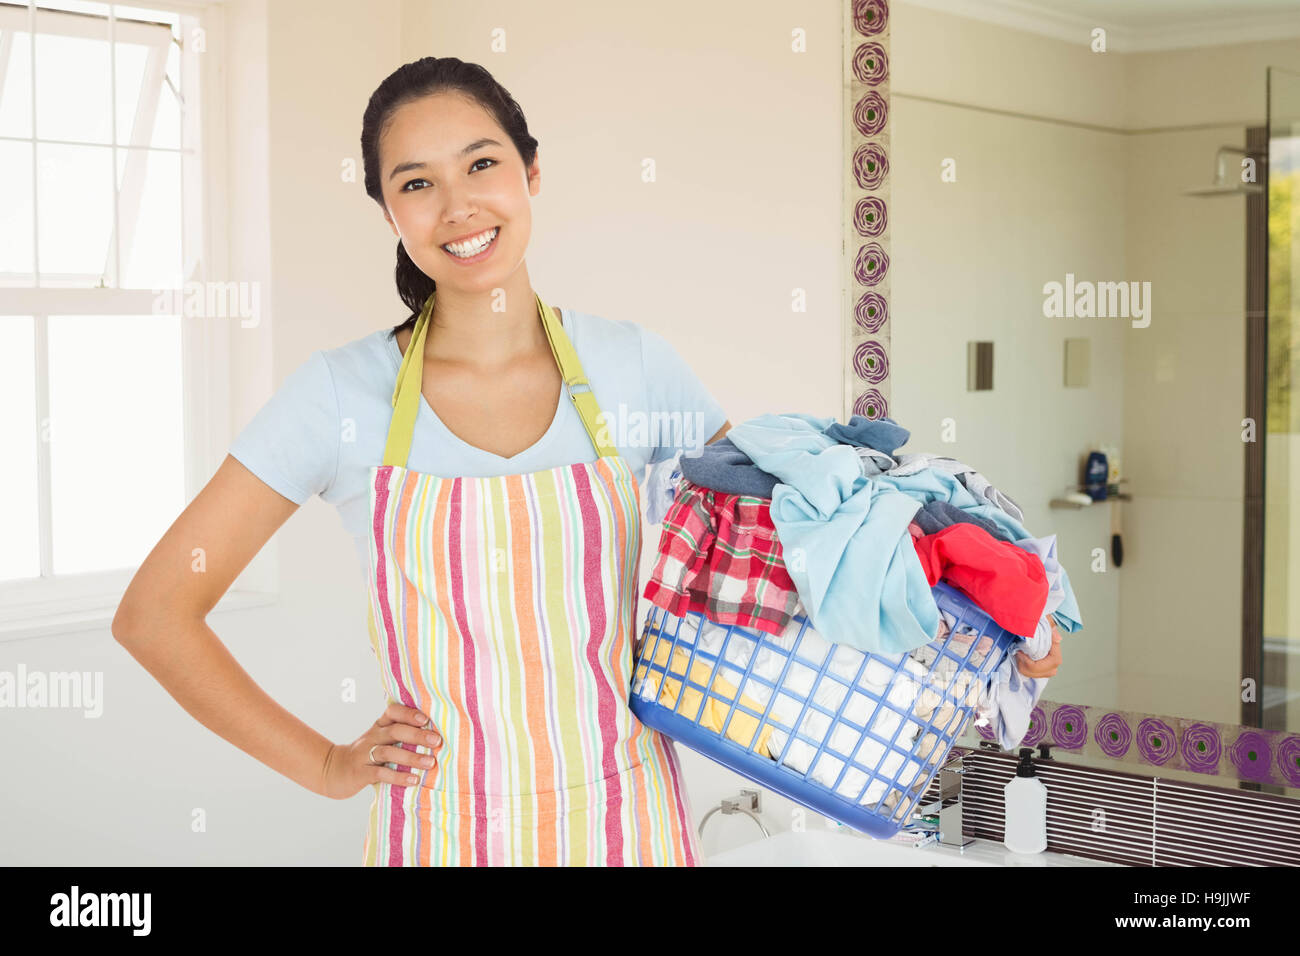 Composite image of happy woman with laundry basket - Stock Image